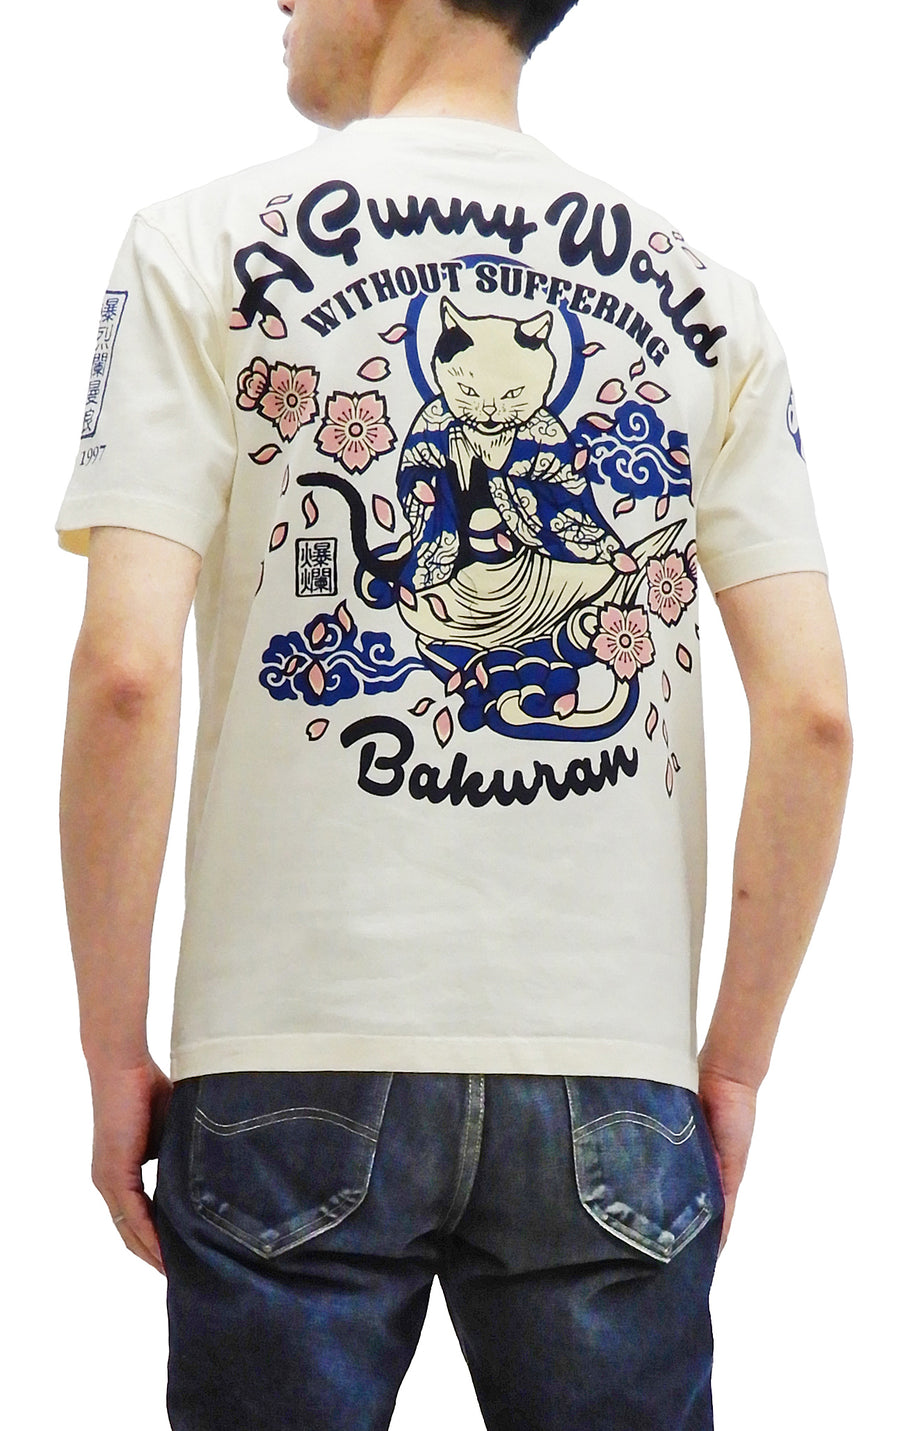 B-R-M T-Shirt Men's Japanese Cat Art Graphic Short Sleeve Tee RMT-314 Off-White